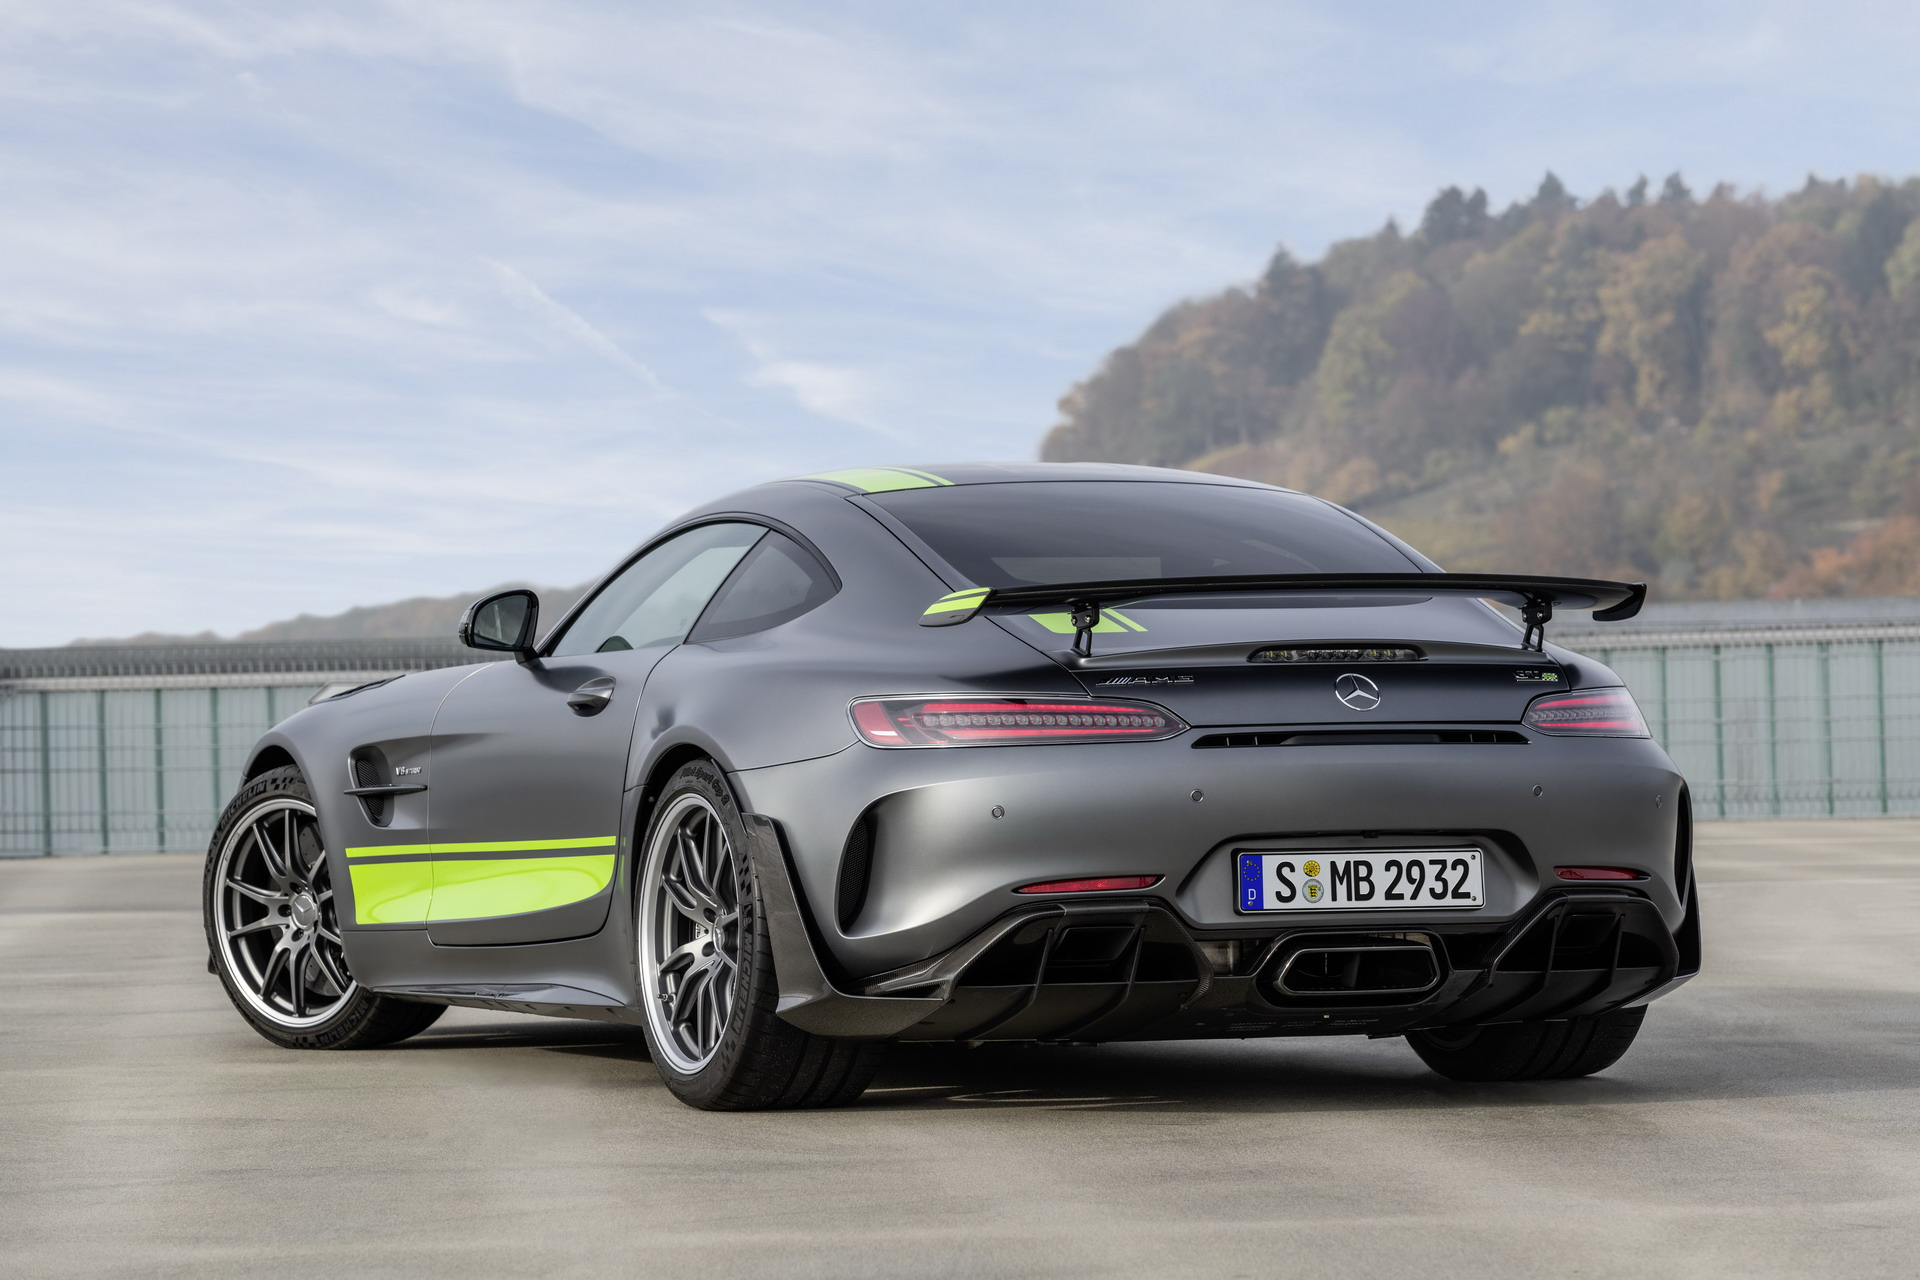 Mercedes-AMG GT and AMG GT R PRO Revealed